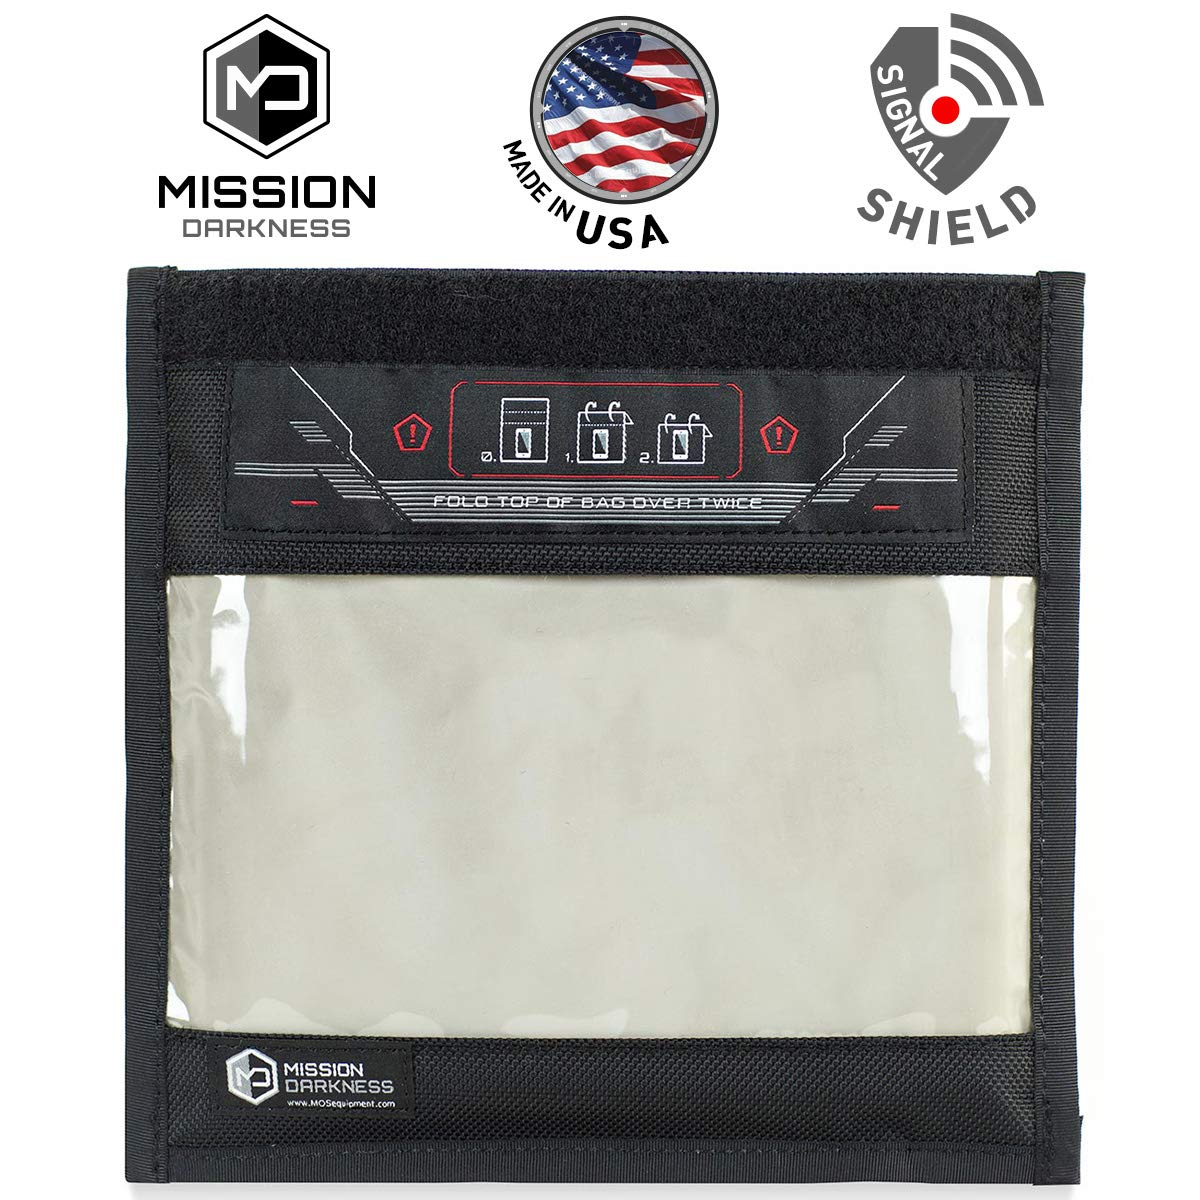 Mission Darkness Window Faraday Bag for Phones - Device Shielding for Law Enforcement, Military, Executive Privacy, Travel & Data Security, Anti-Hacking & Anti-Tracking Assurance by Mission Darkness (Image #1)